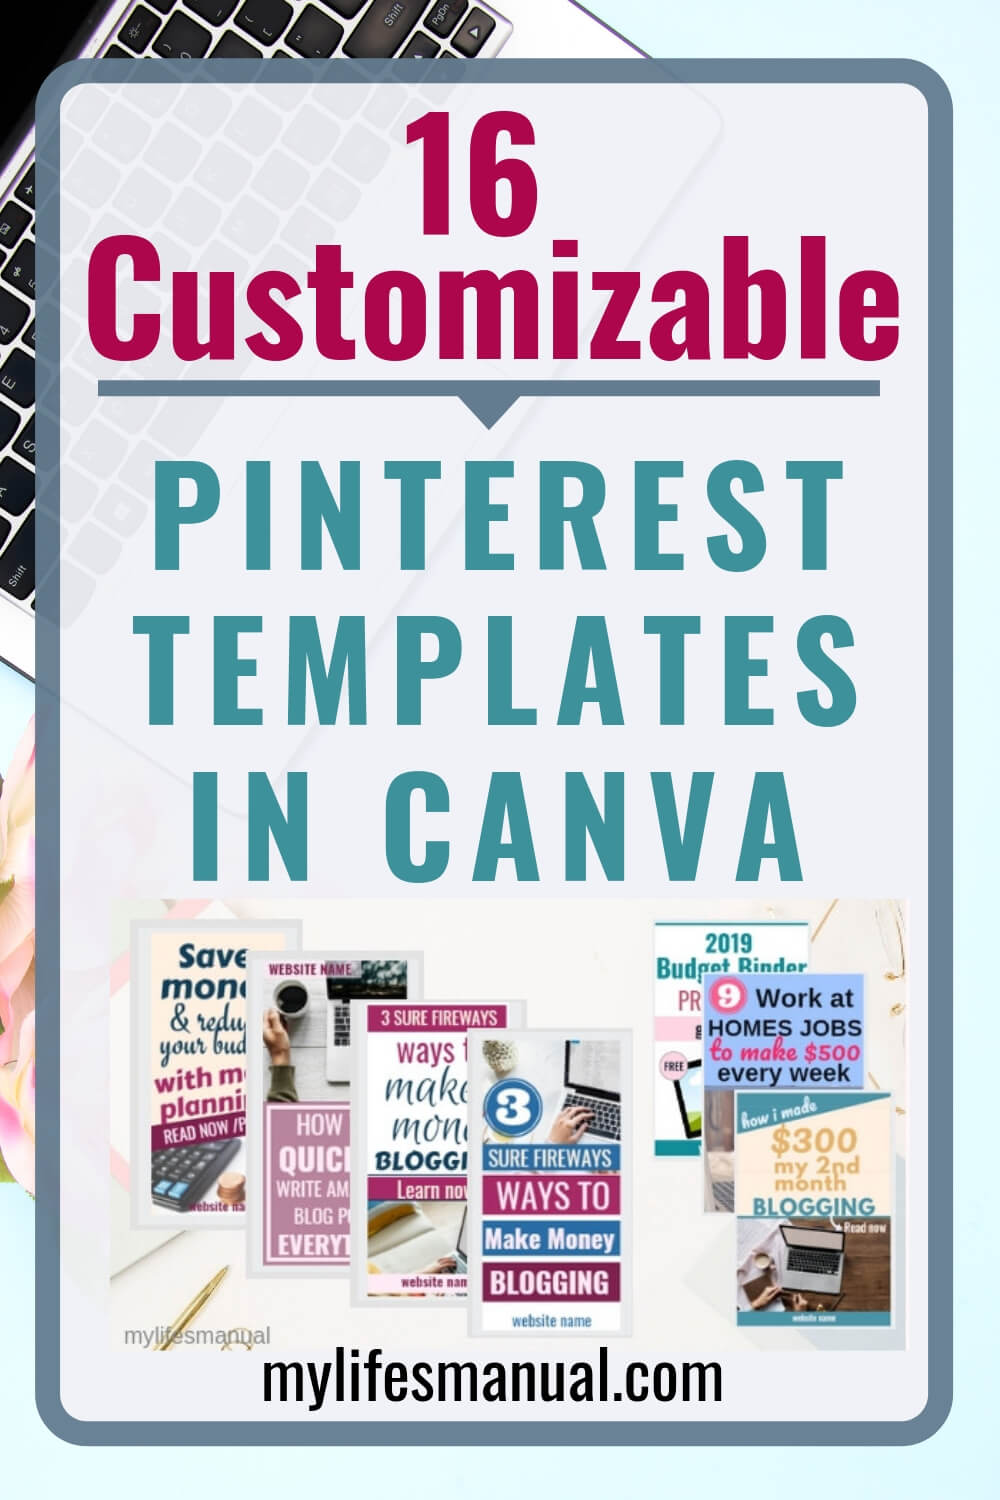 Customizable Pinterest Templates in Canva For Busy Bloggers